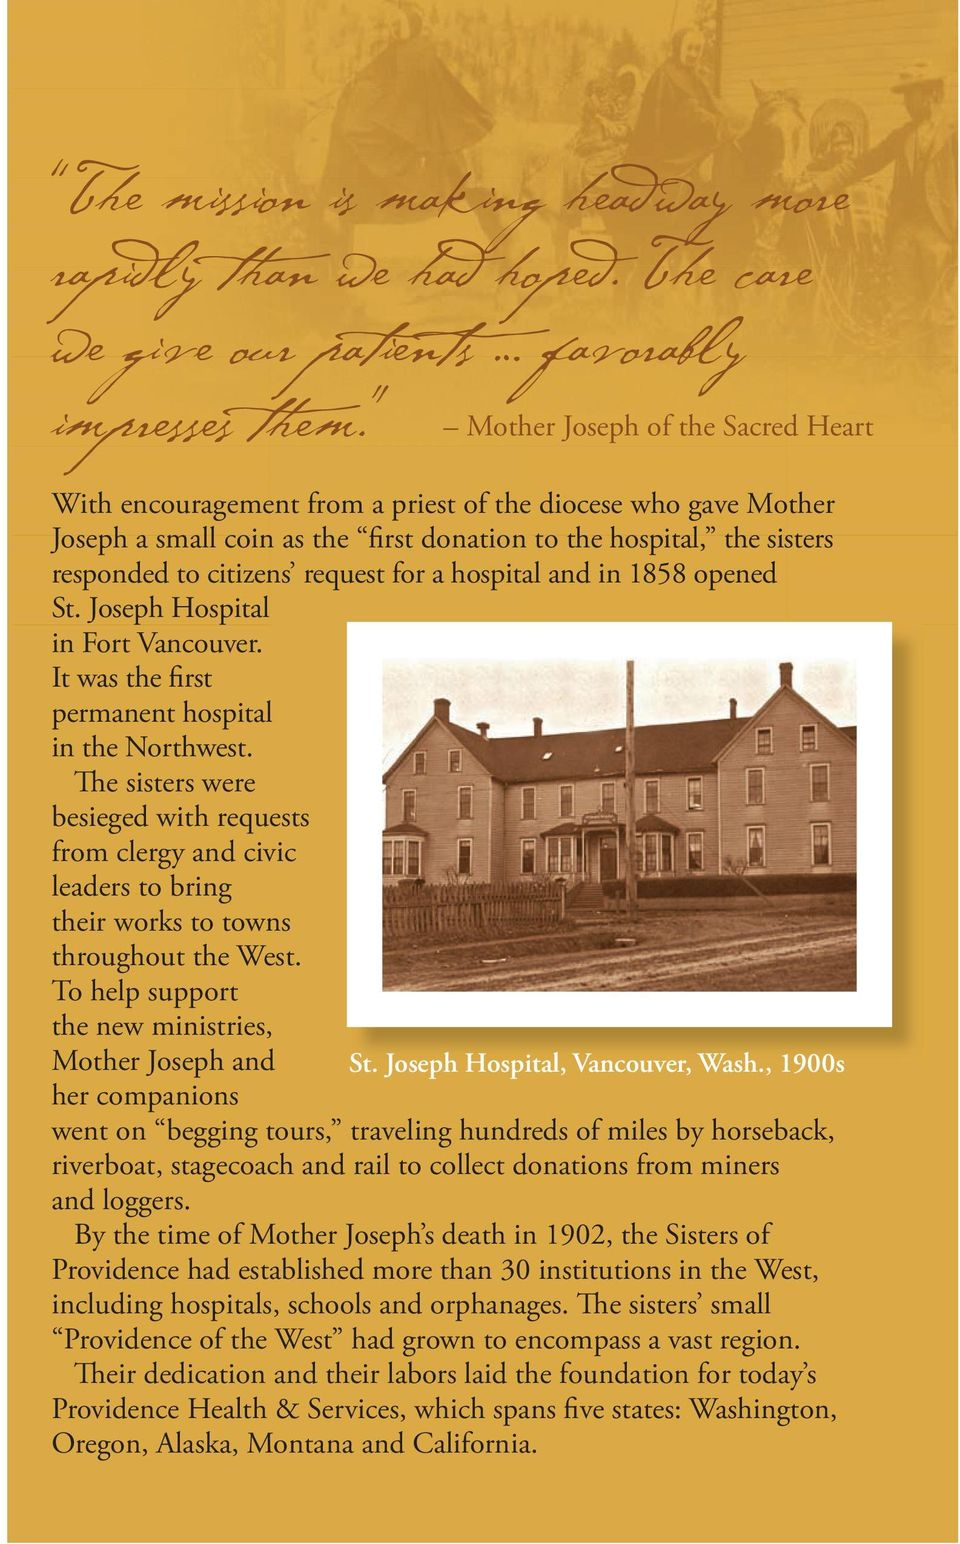 for a hospital and in 1858 opened St. Joseph Hospital in Fort Vancouver. It was the first permanent hospital in the Northwest.